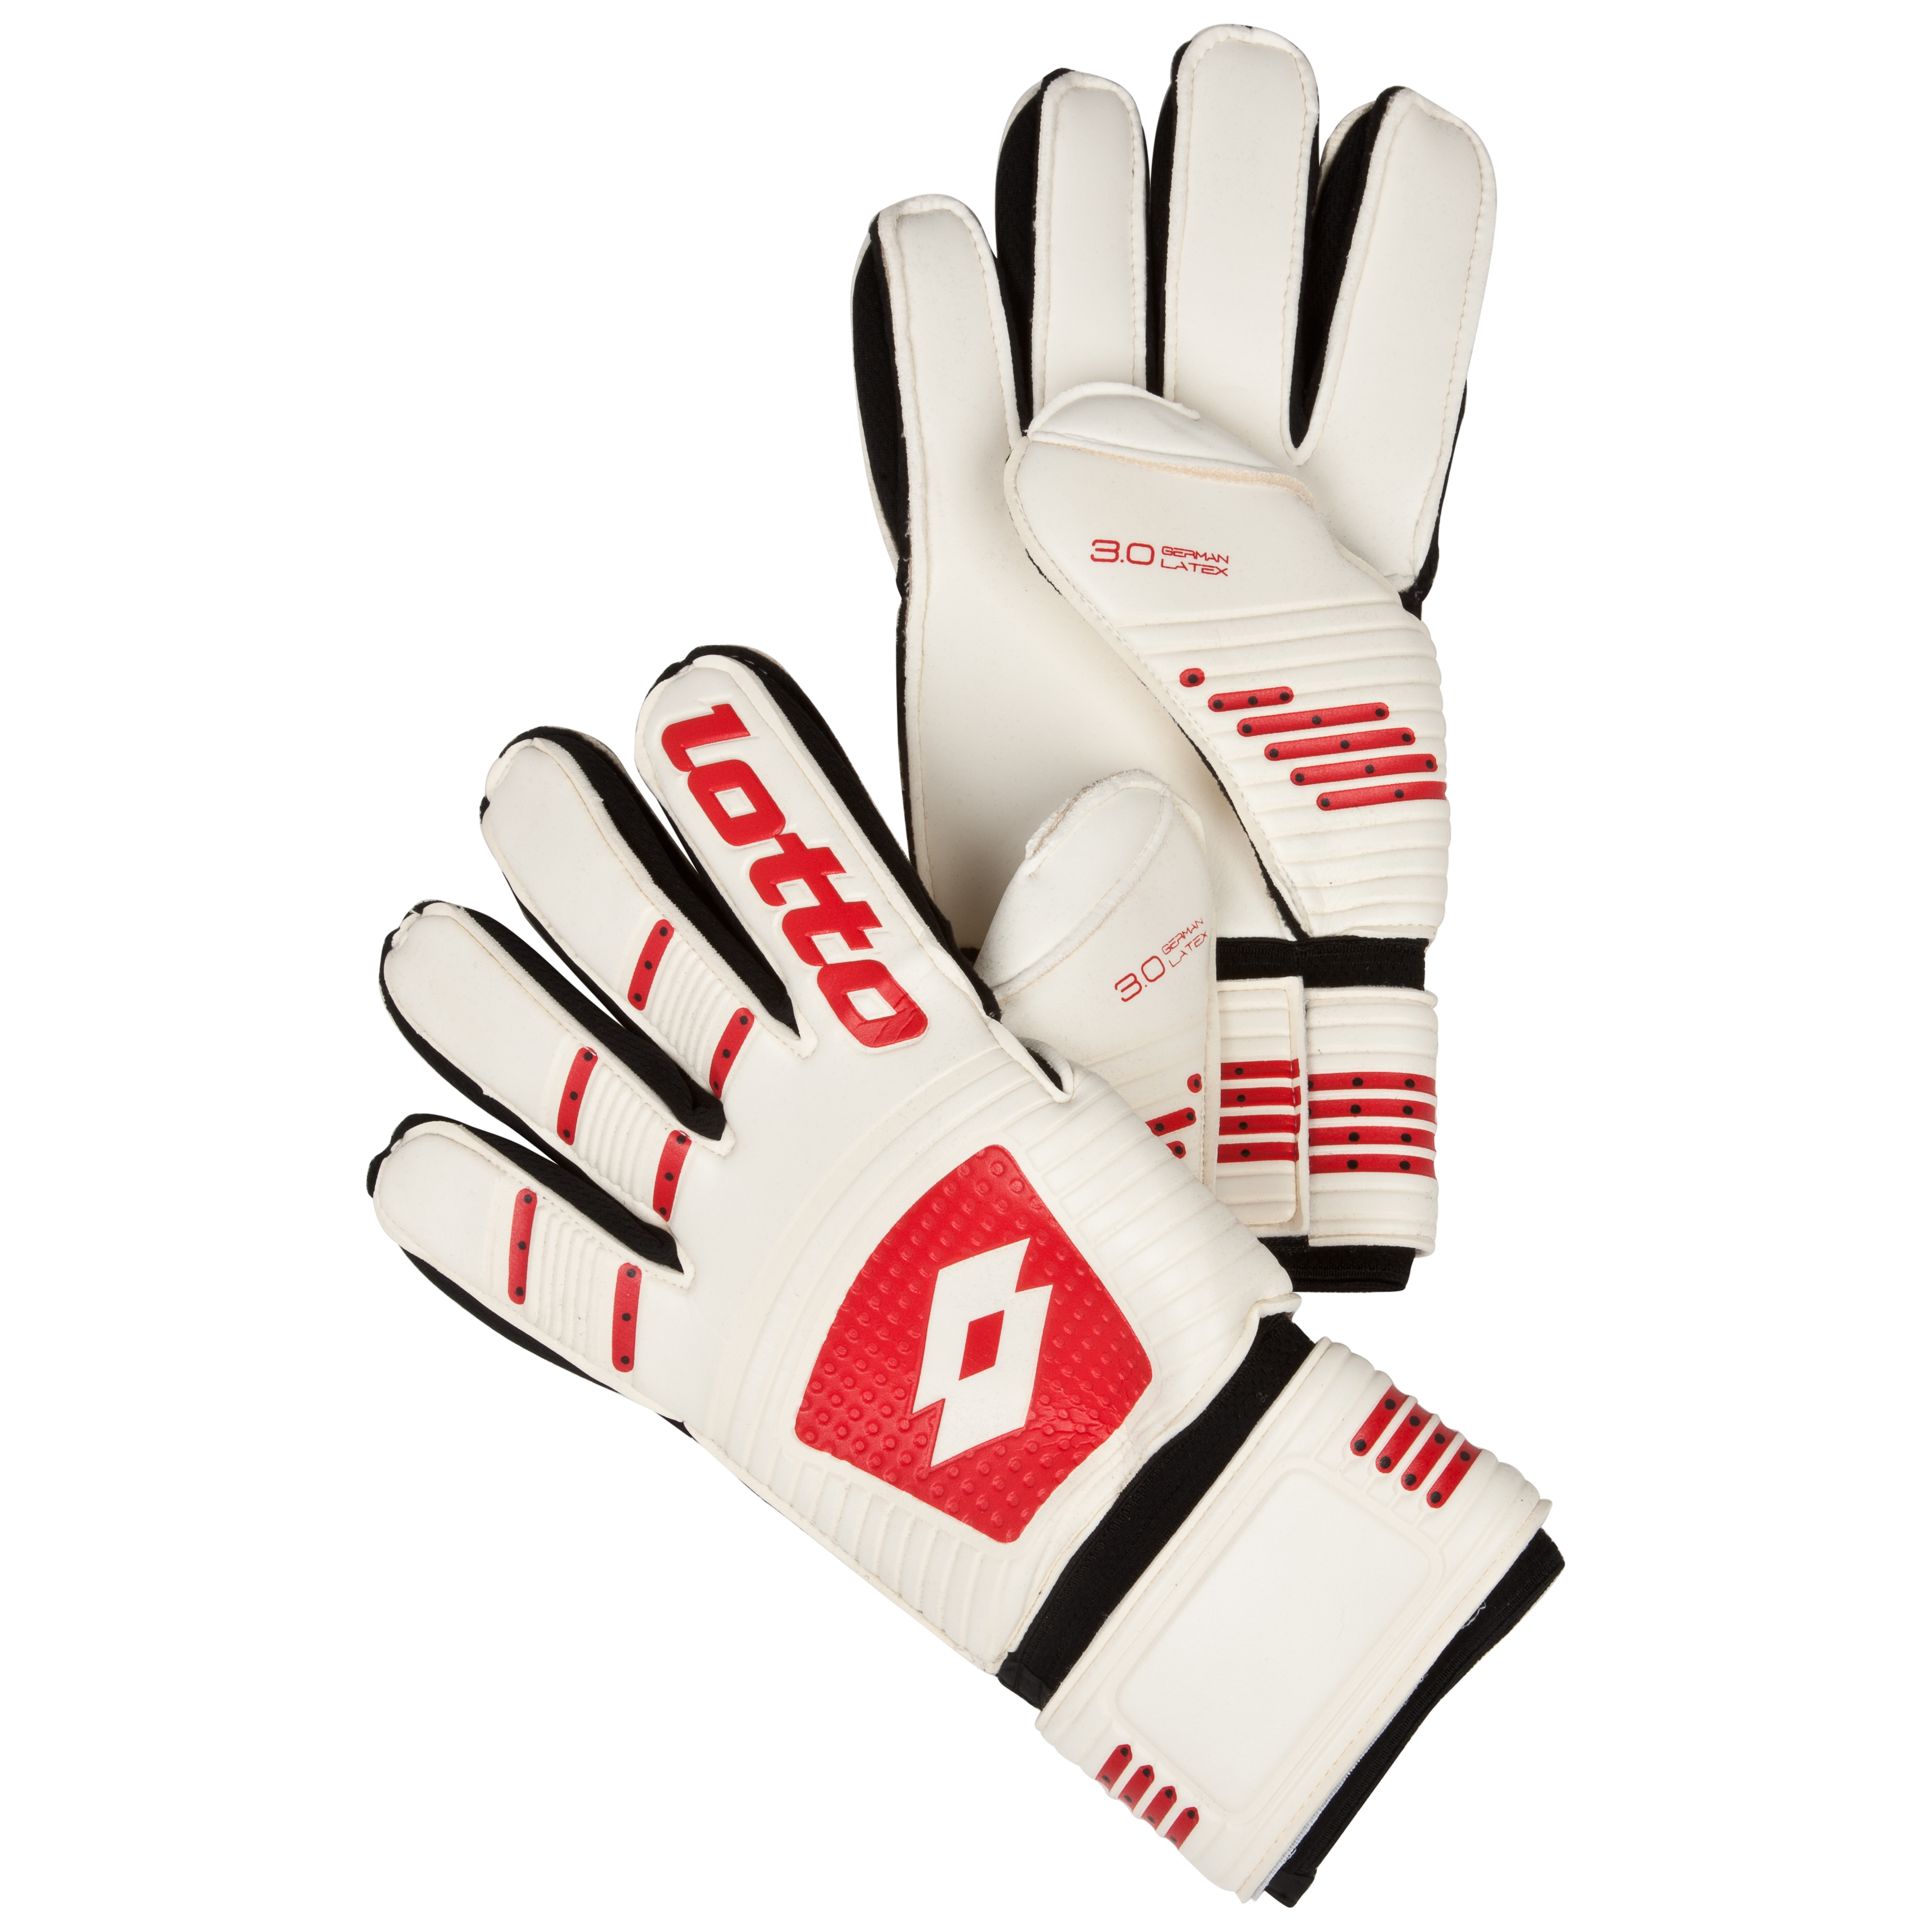 Lotto Gripster GK500 III Goalkeeper Gloves-White/Risk Red